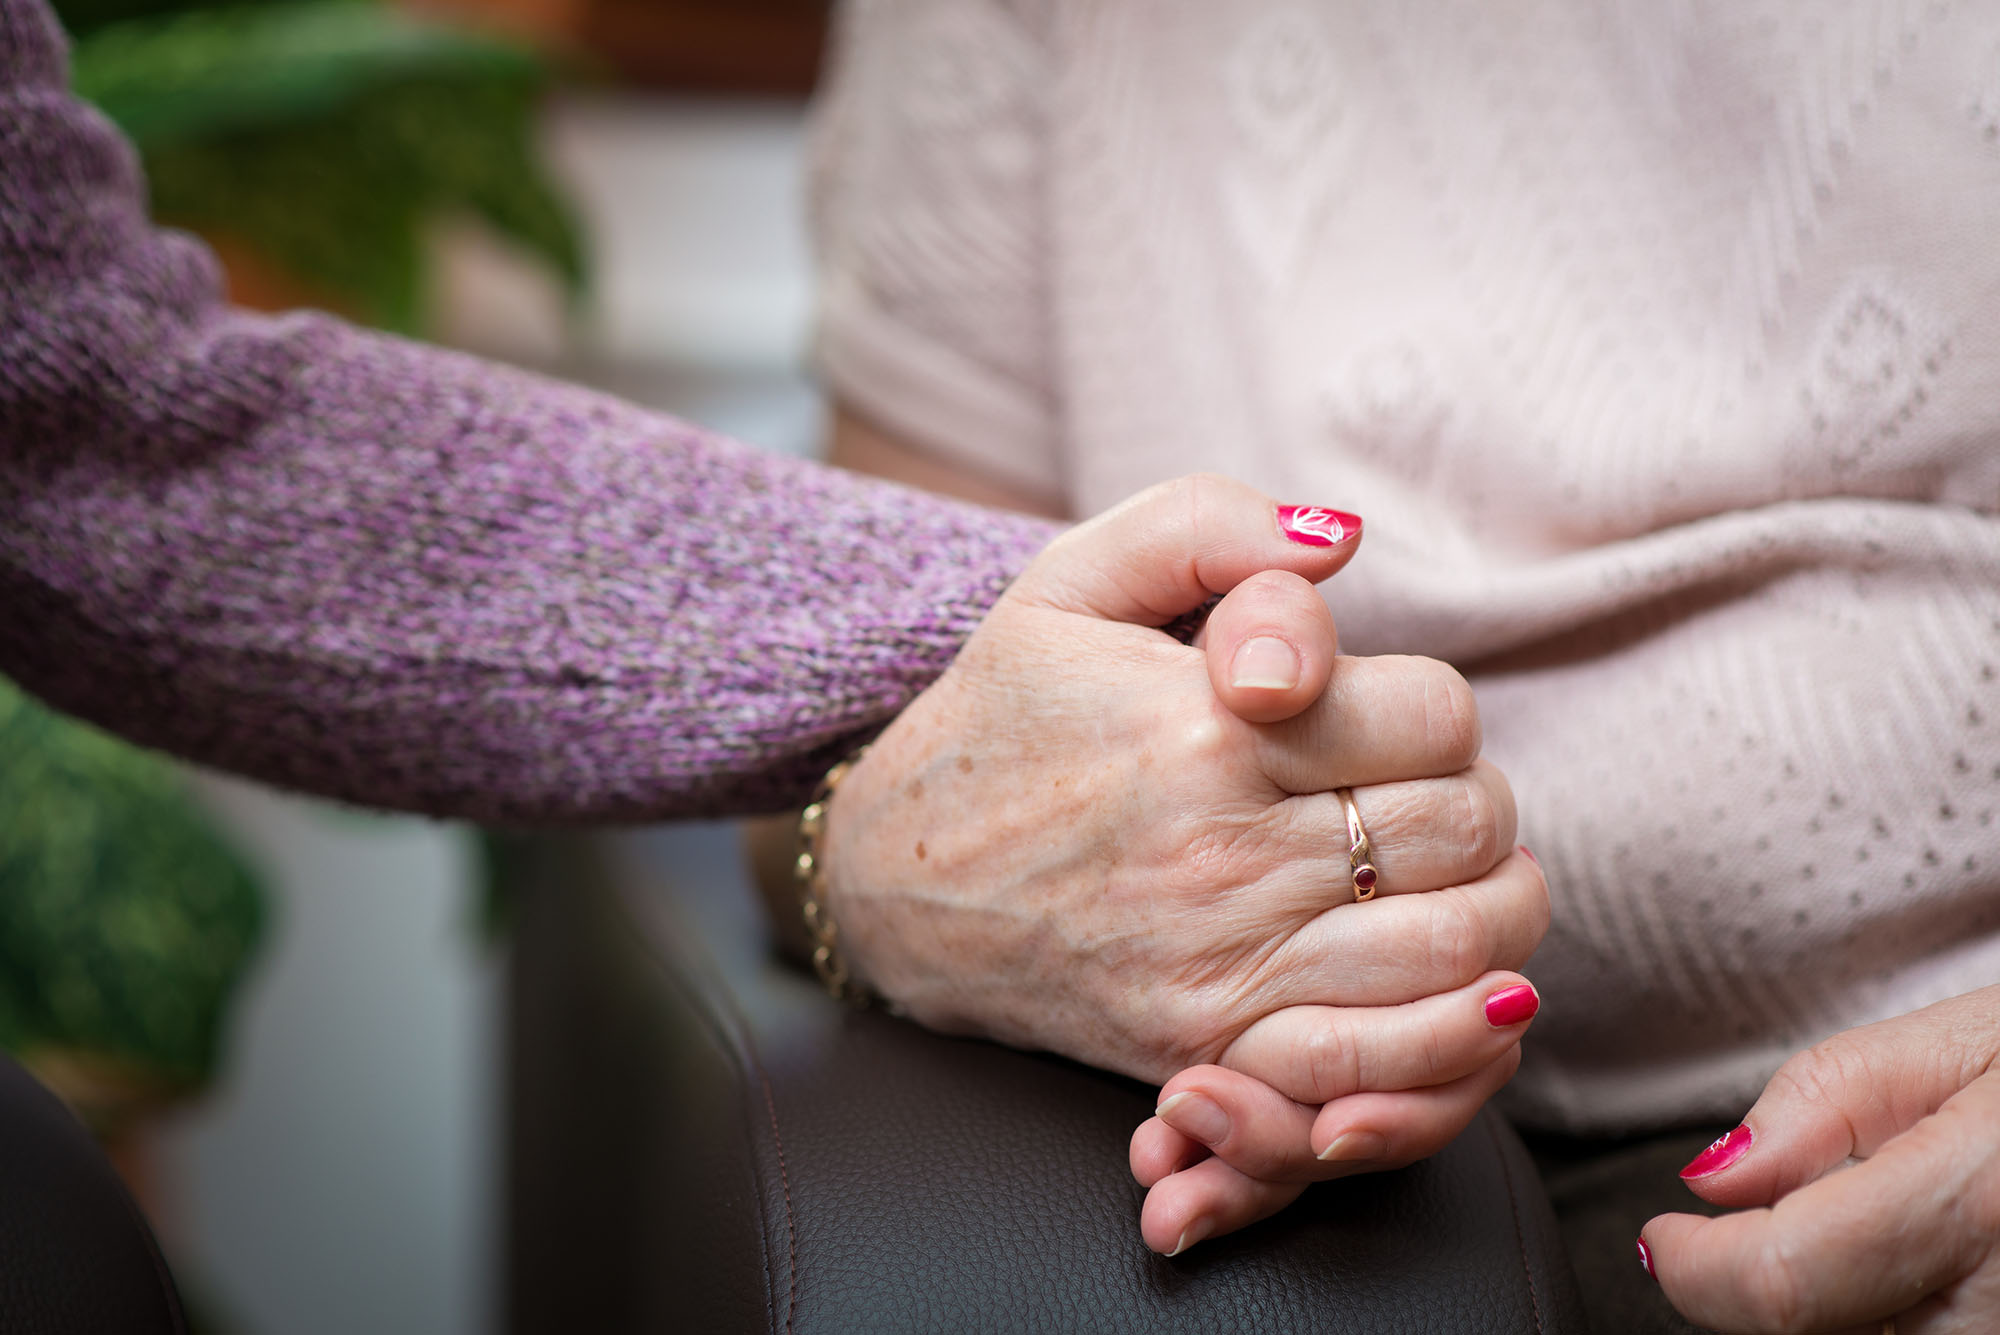 5 simple steps to effectively manage carer's stress